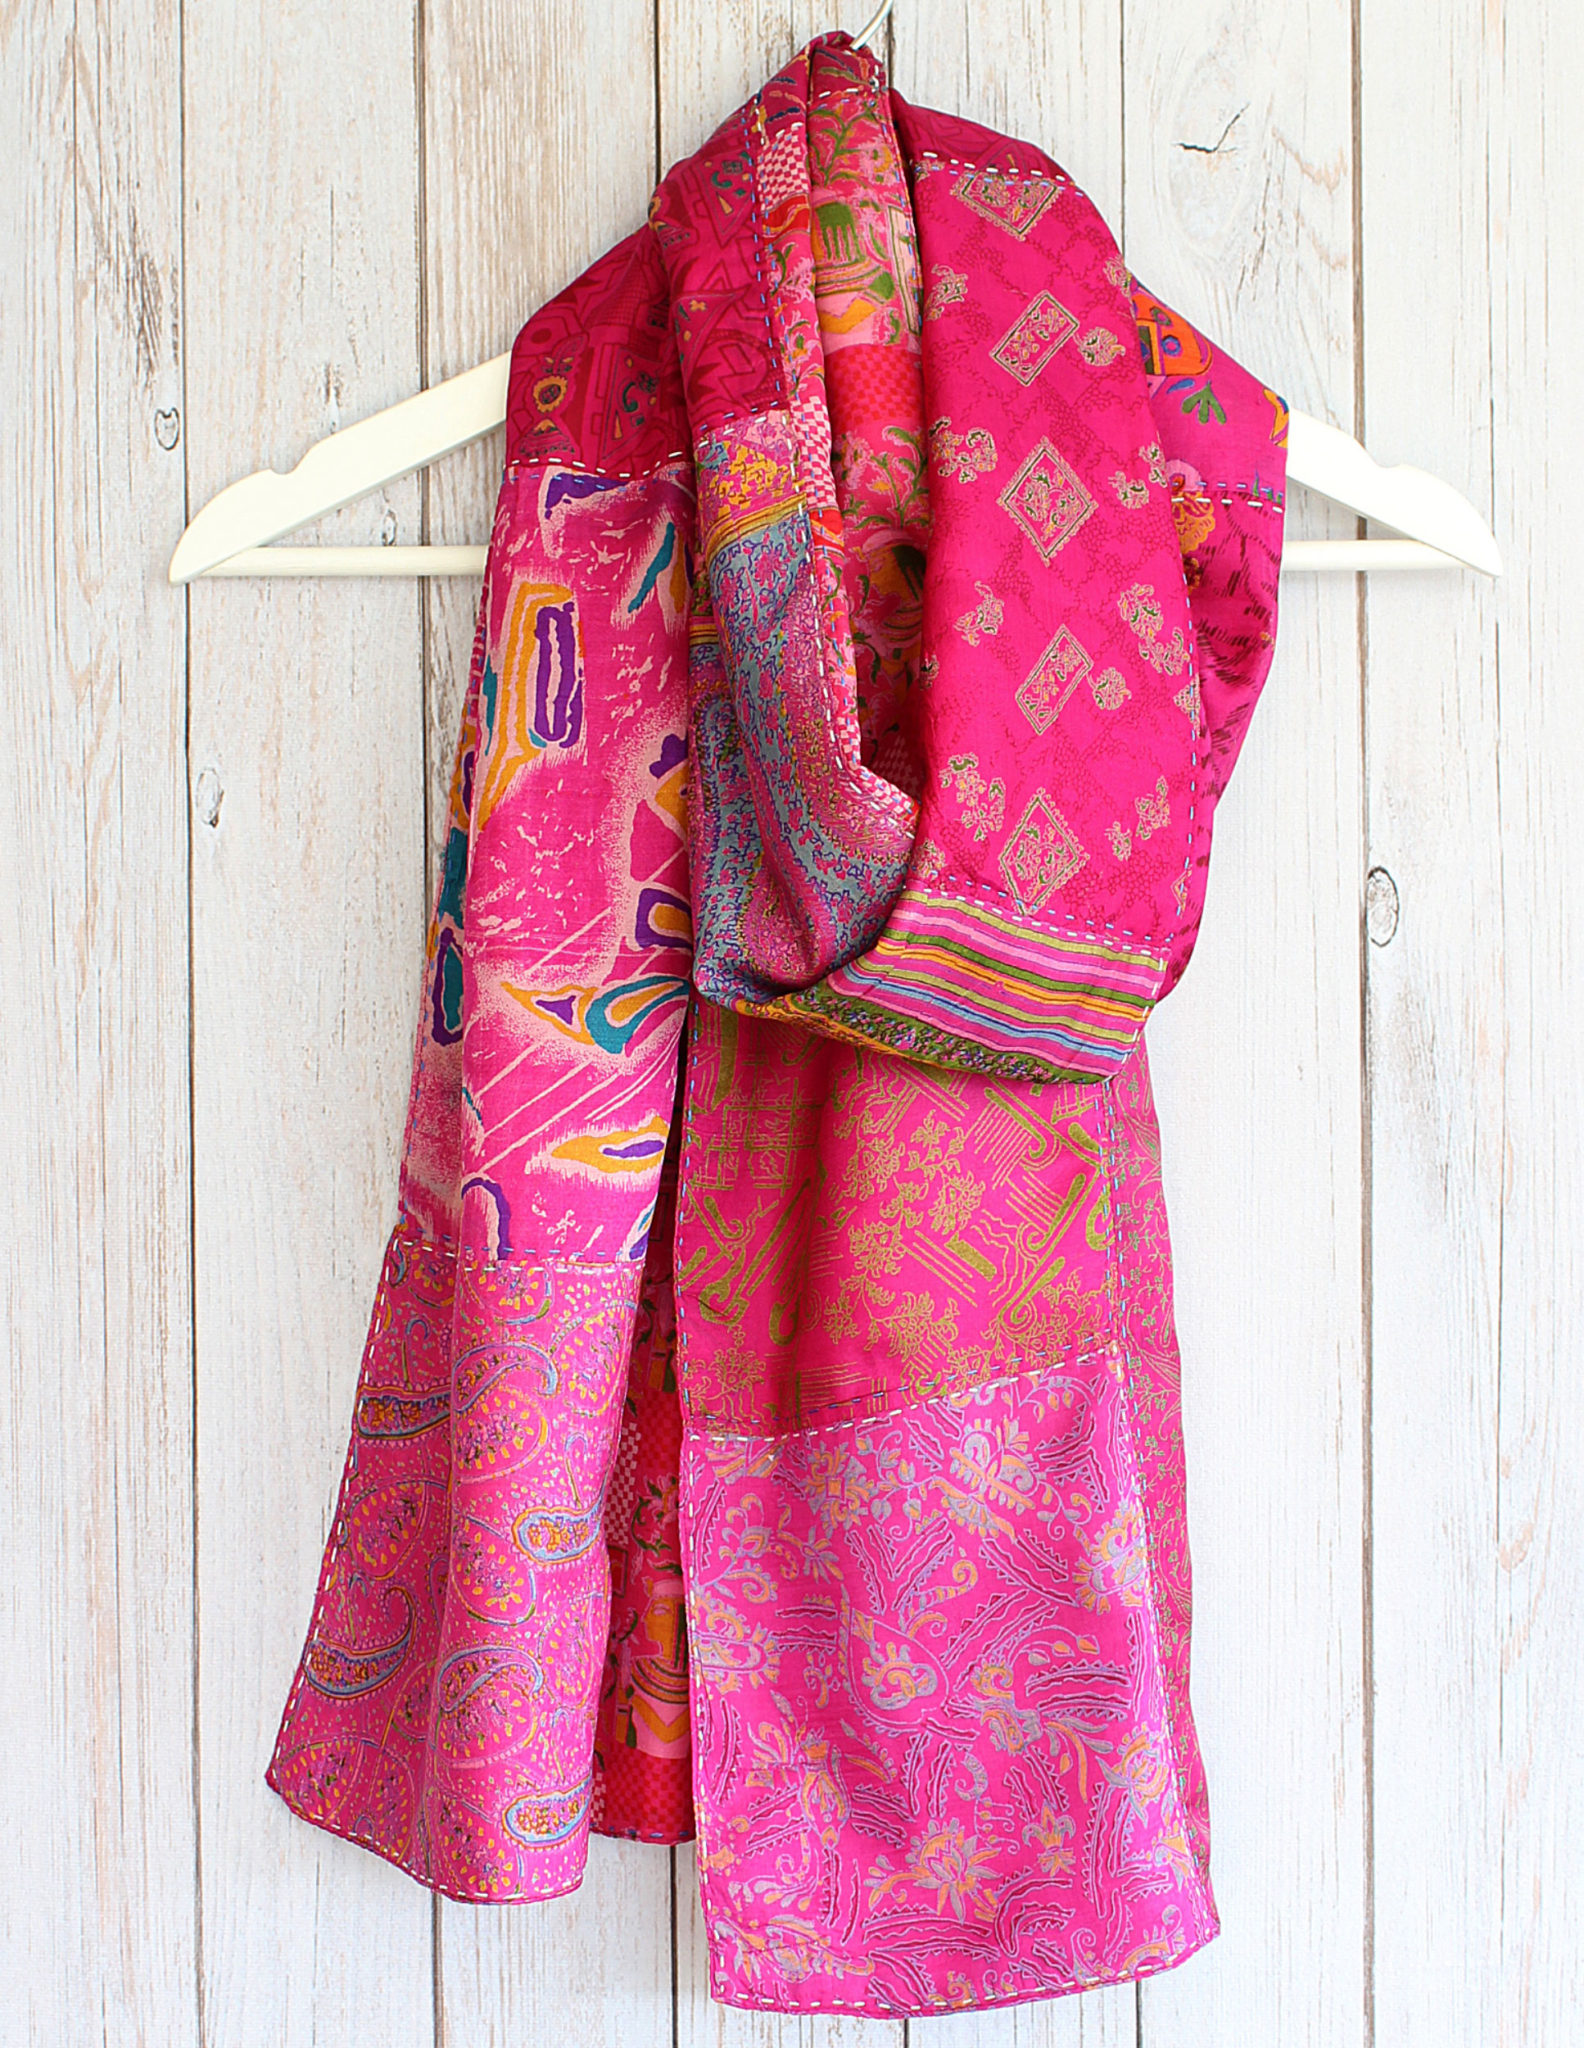 Pink Kantha Handstitched Recycled Silk Scarf